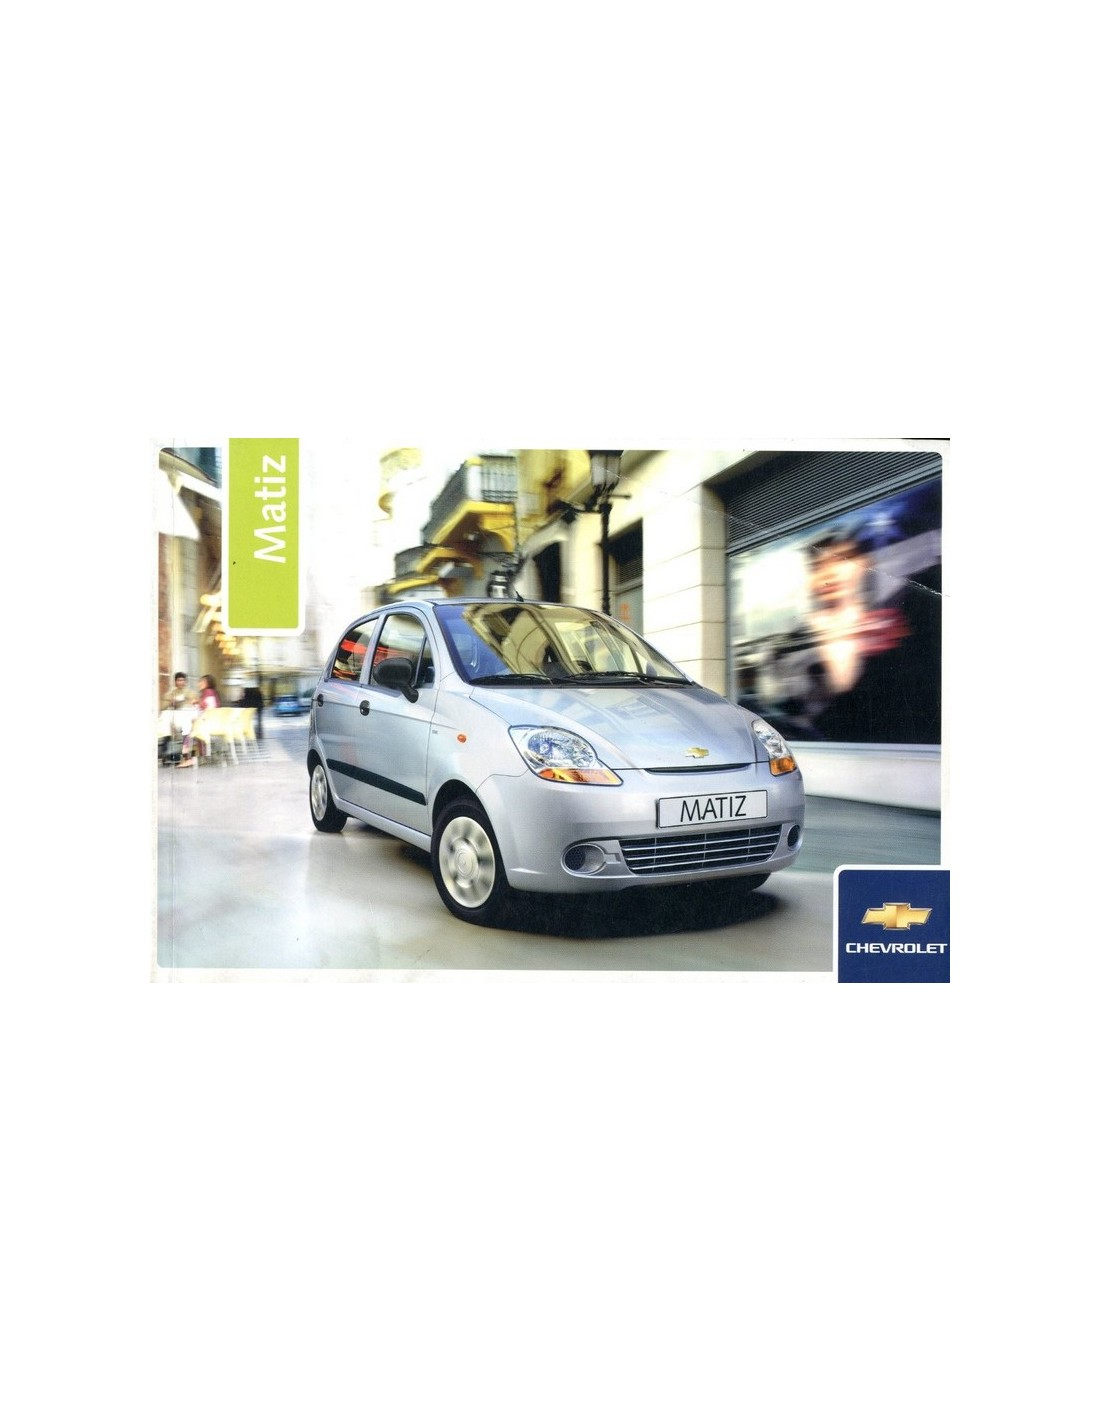 March 2018 2006 chevrolet matiz owners manual dutch fandeluxe Choice Image